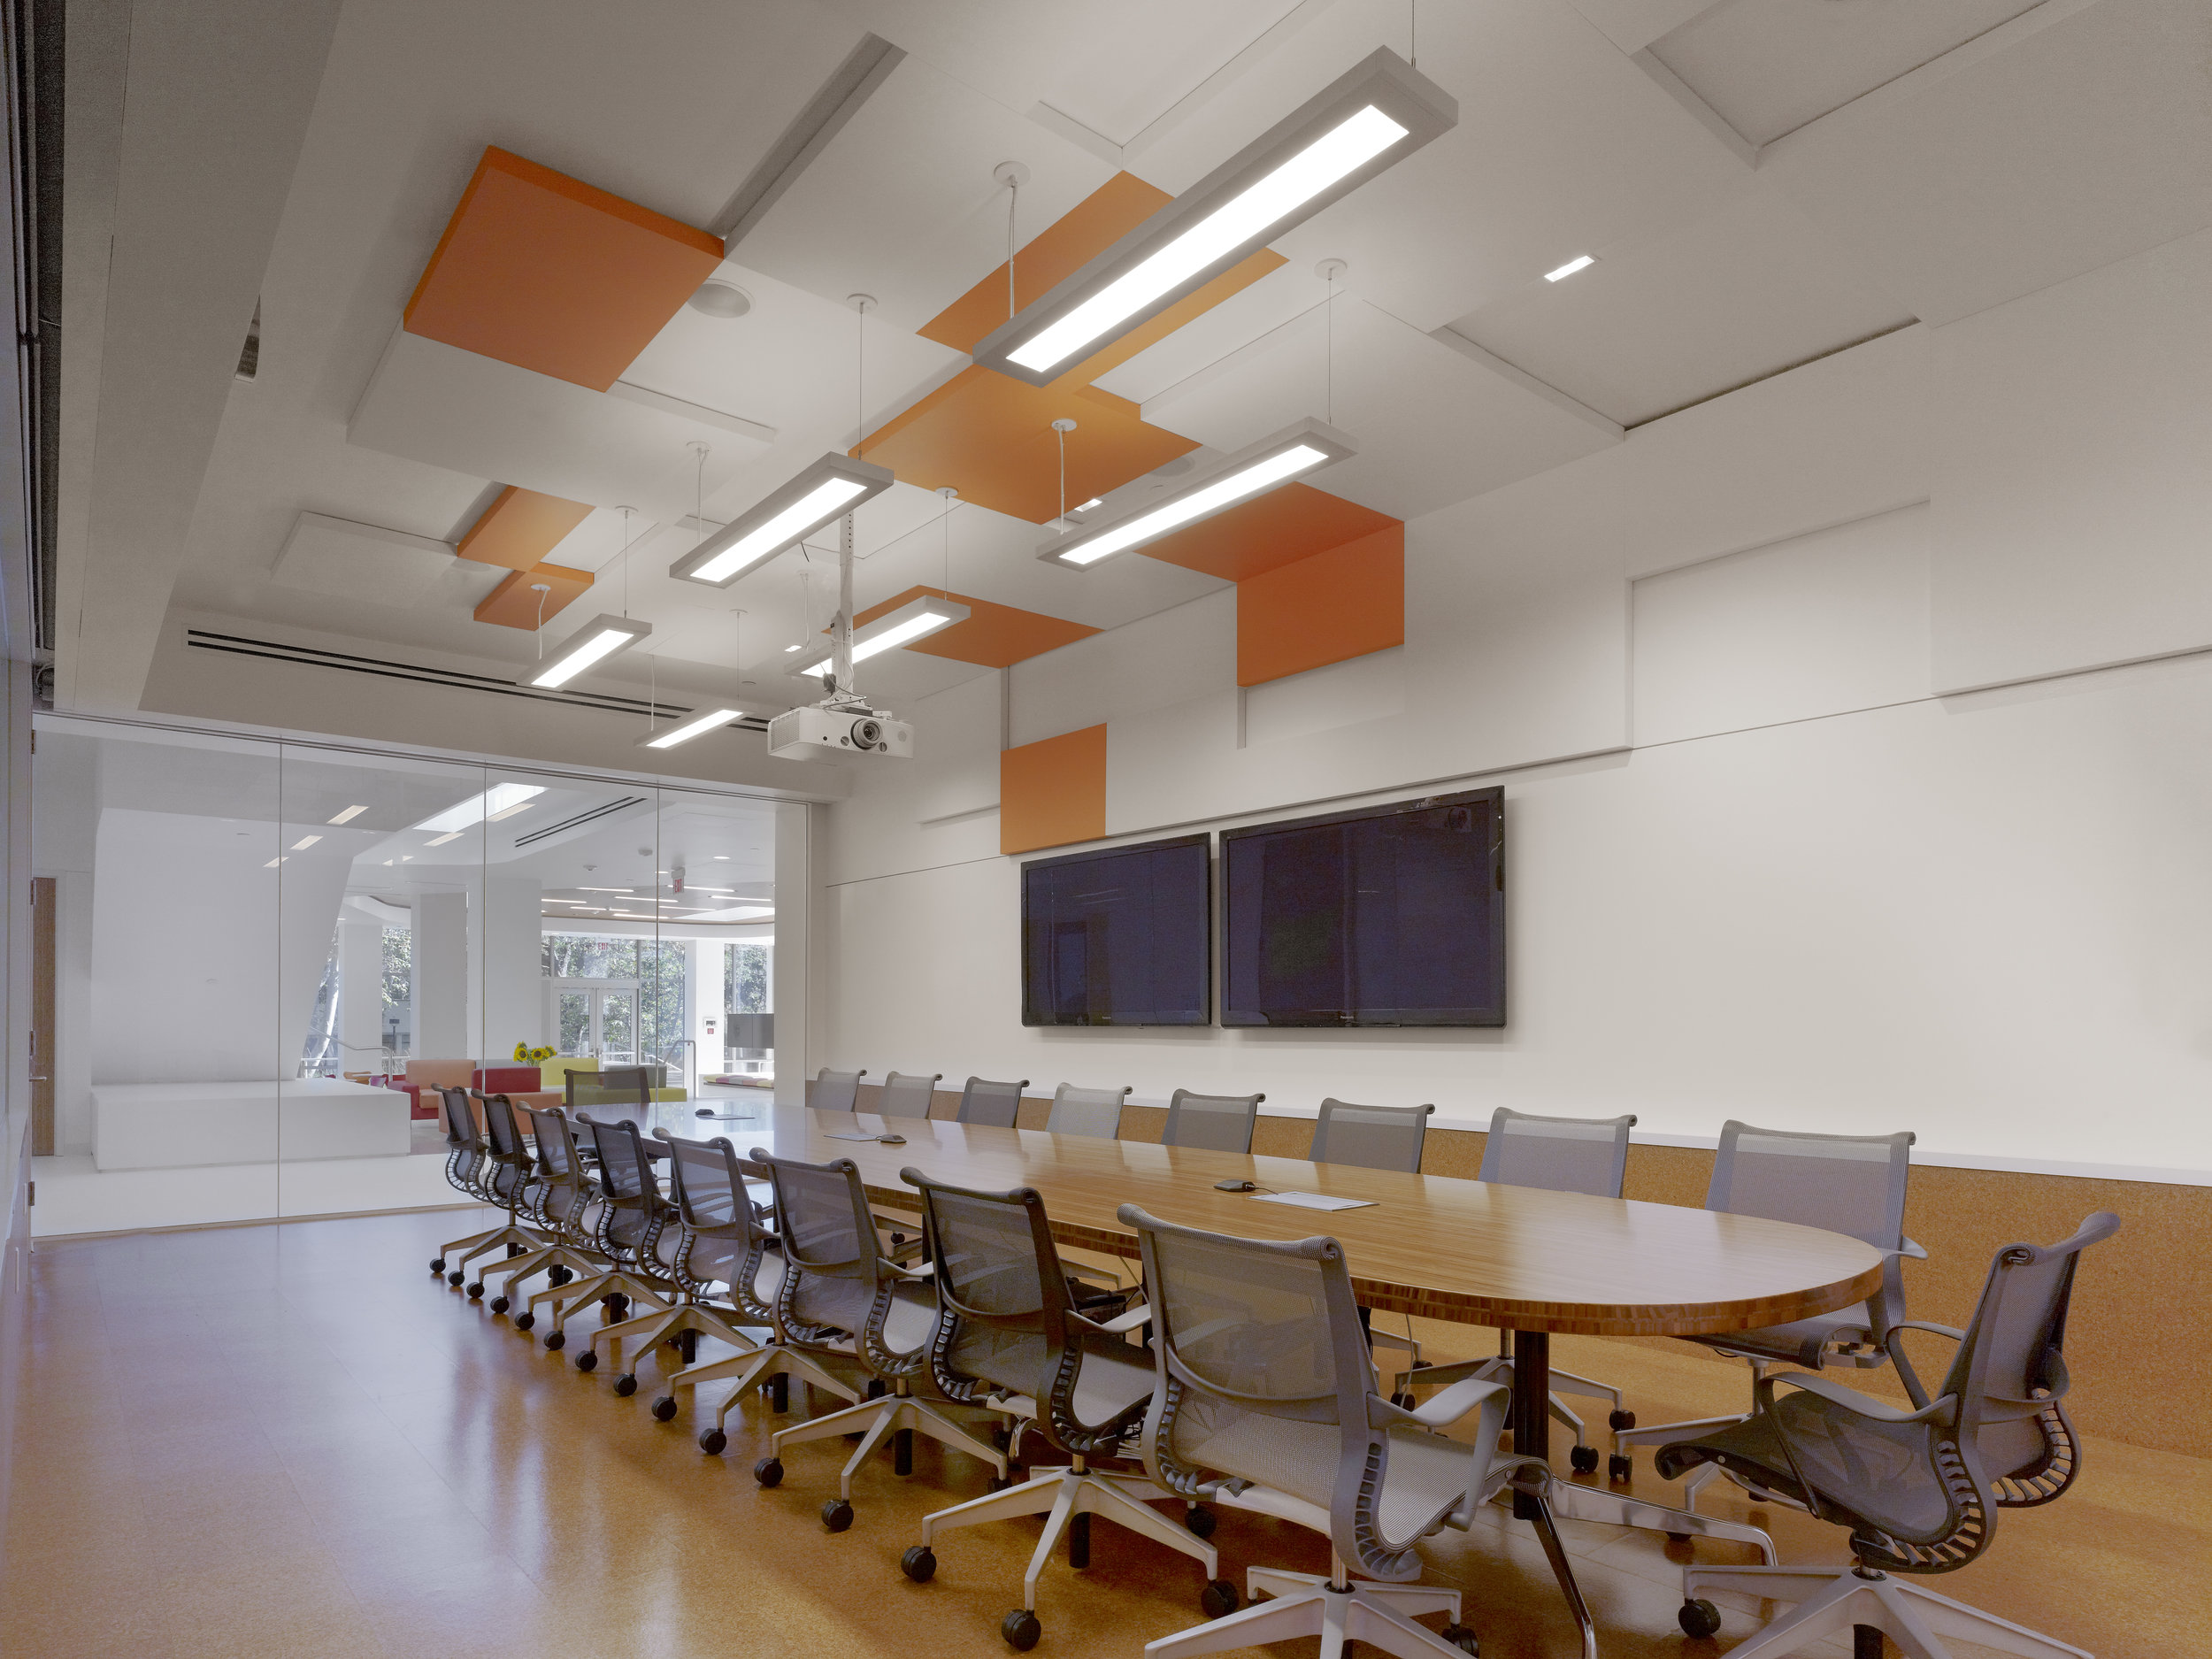 Jorgensen 56290 - Conference Room.jpg